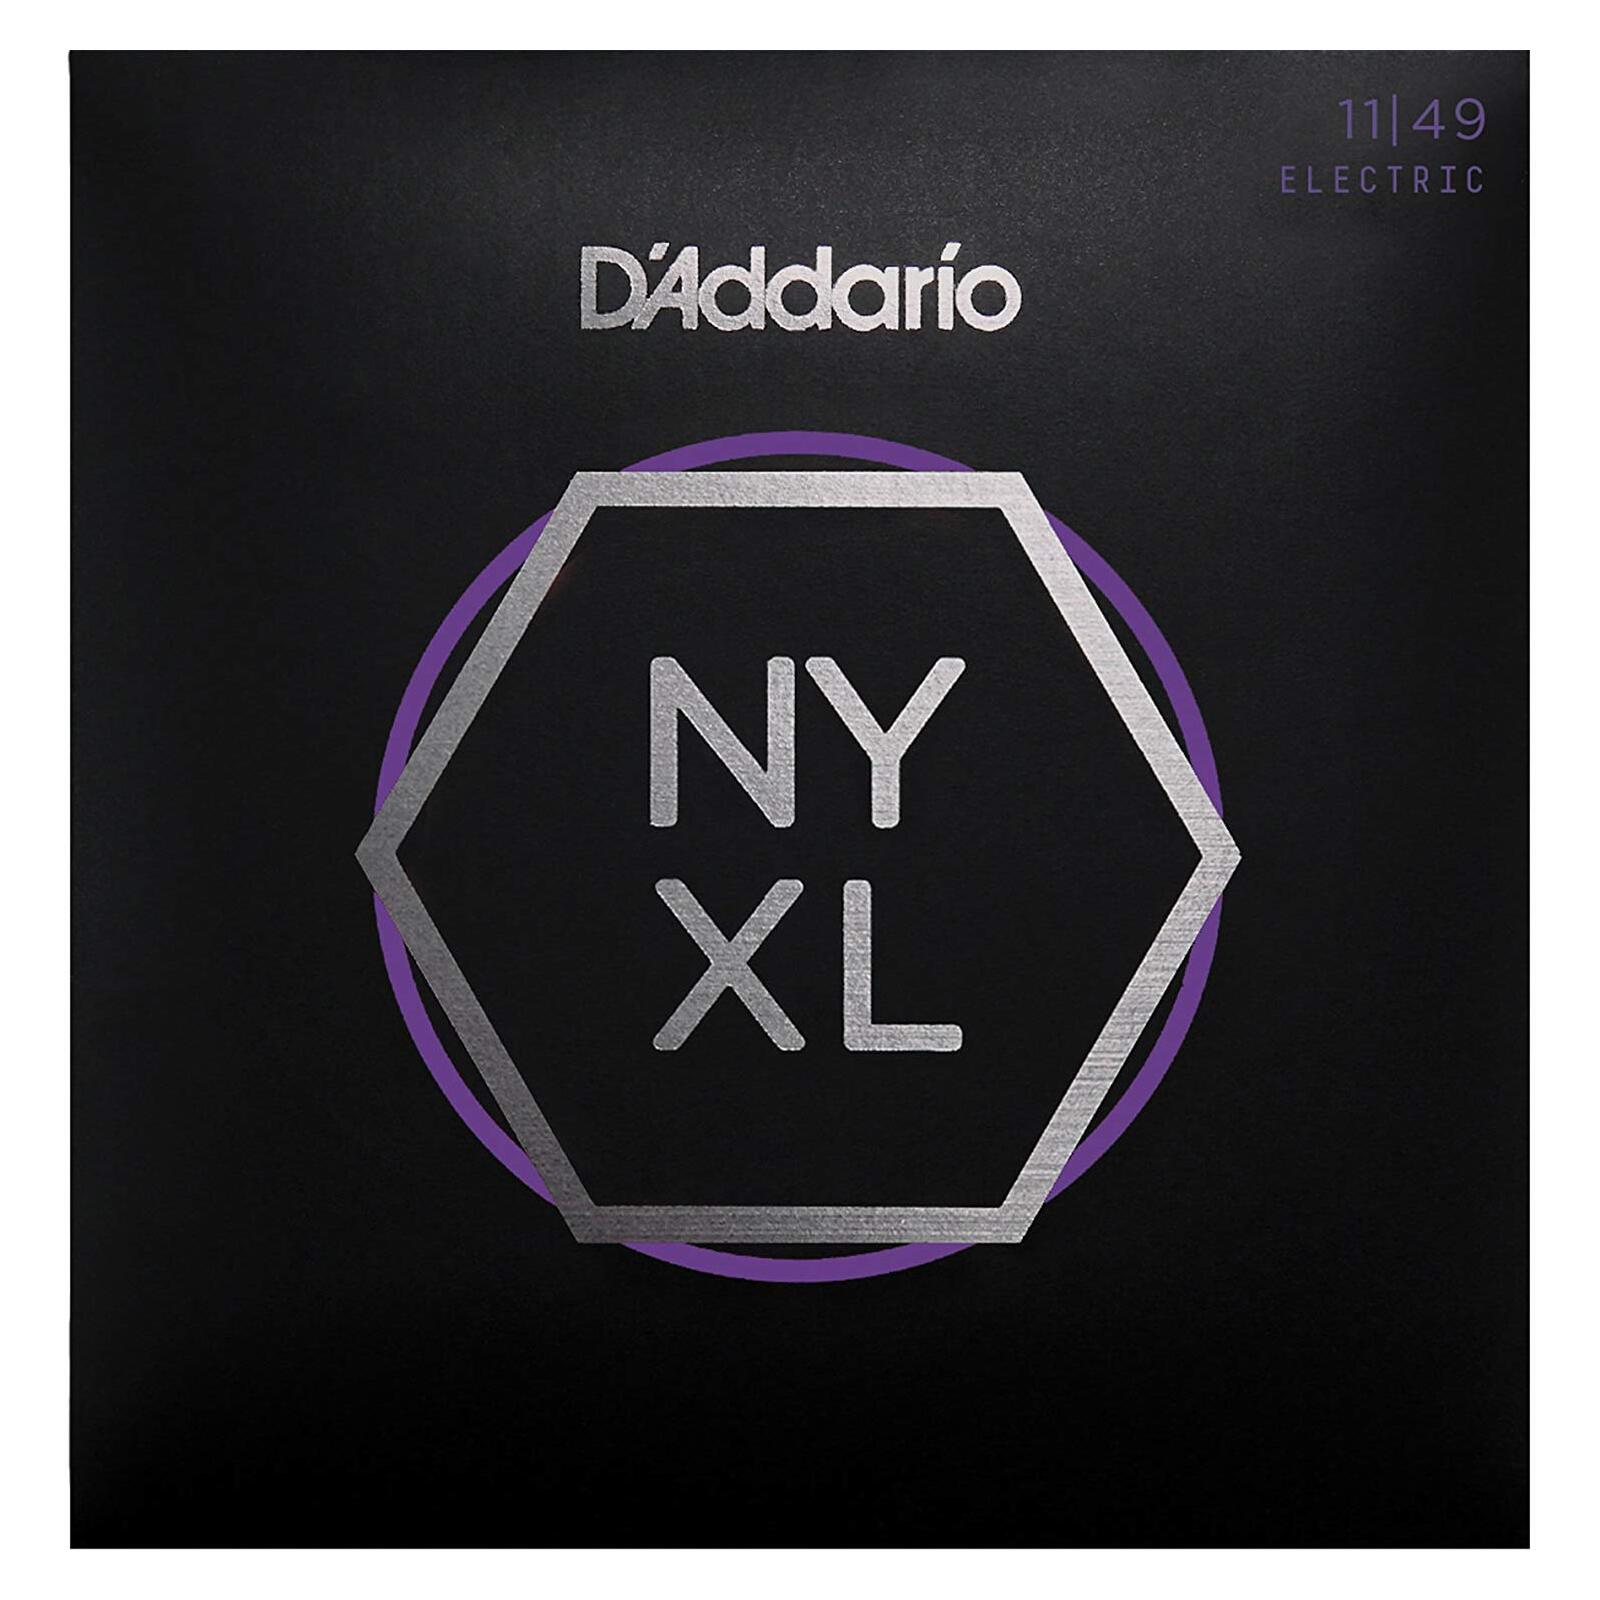 DADDARIO NYXL 11-49 ELECTRIC GUITAR STRINGS